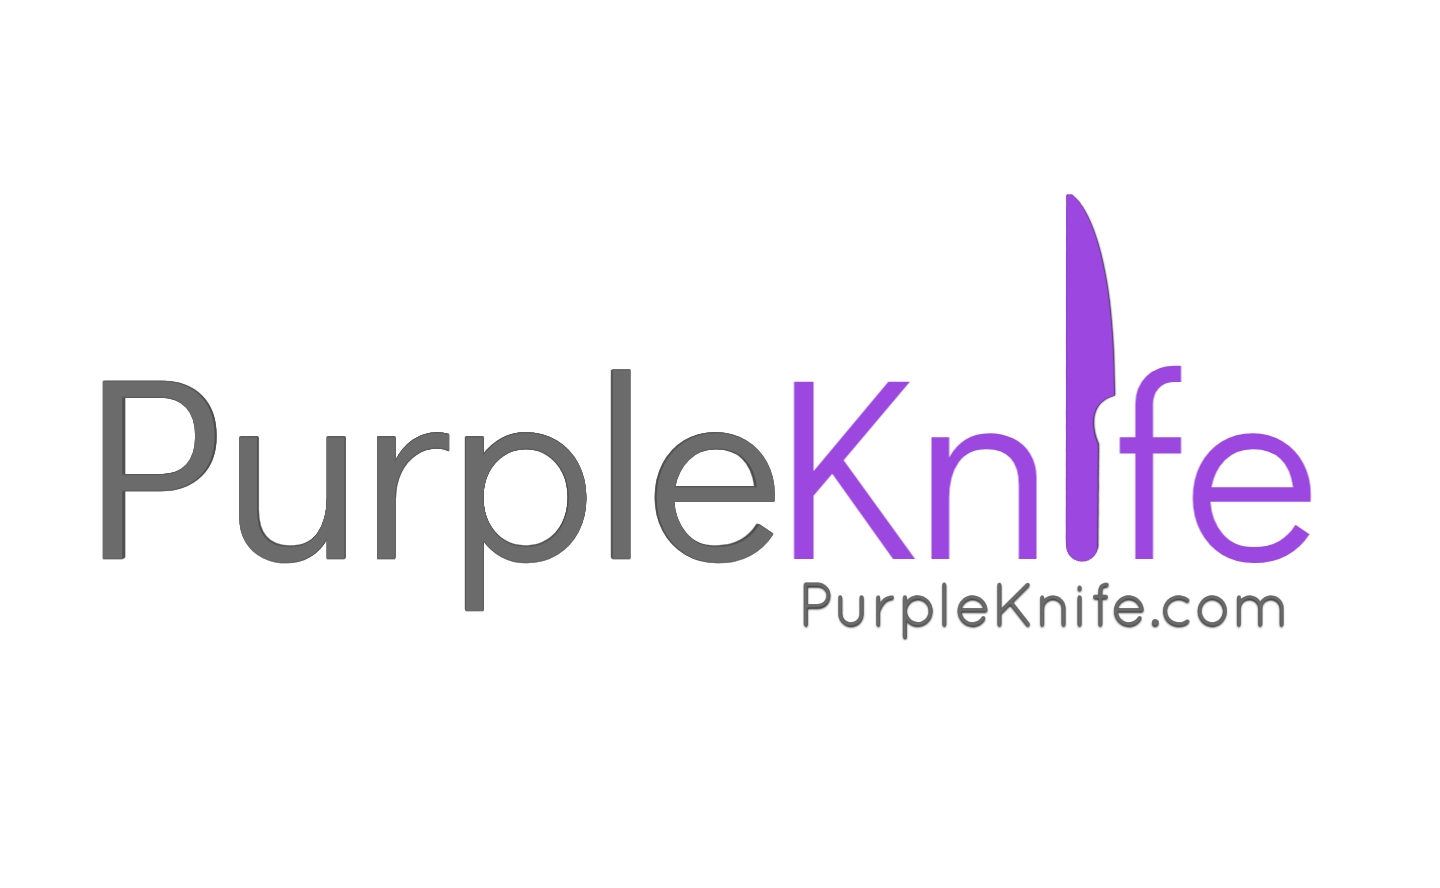 PurpleKnife.com